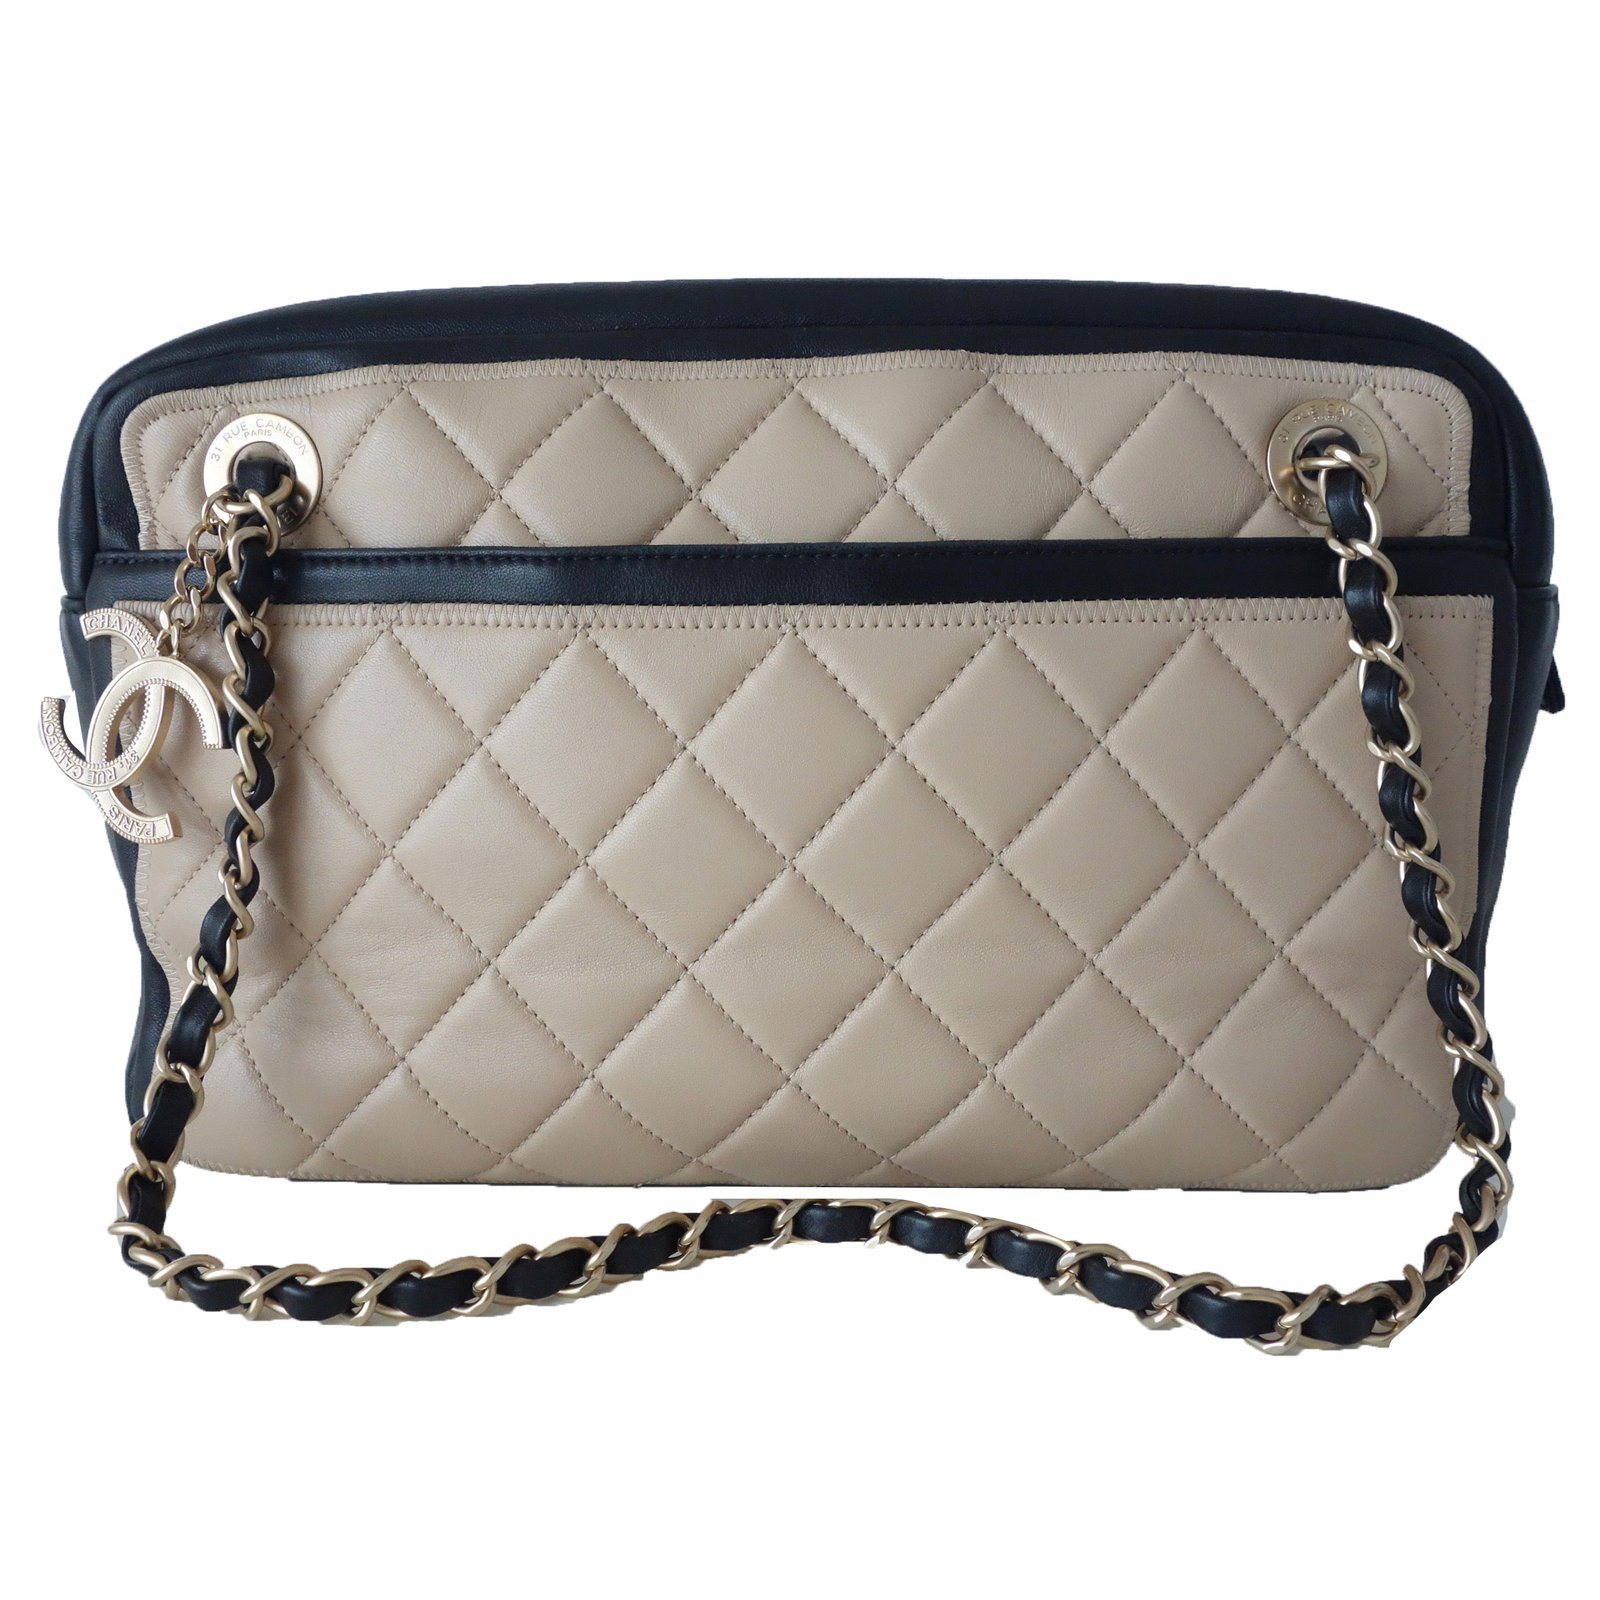 6ecb9090a217 Chanel Coco Boy Camera Bag Quilted Leather Mini At 1stdibs